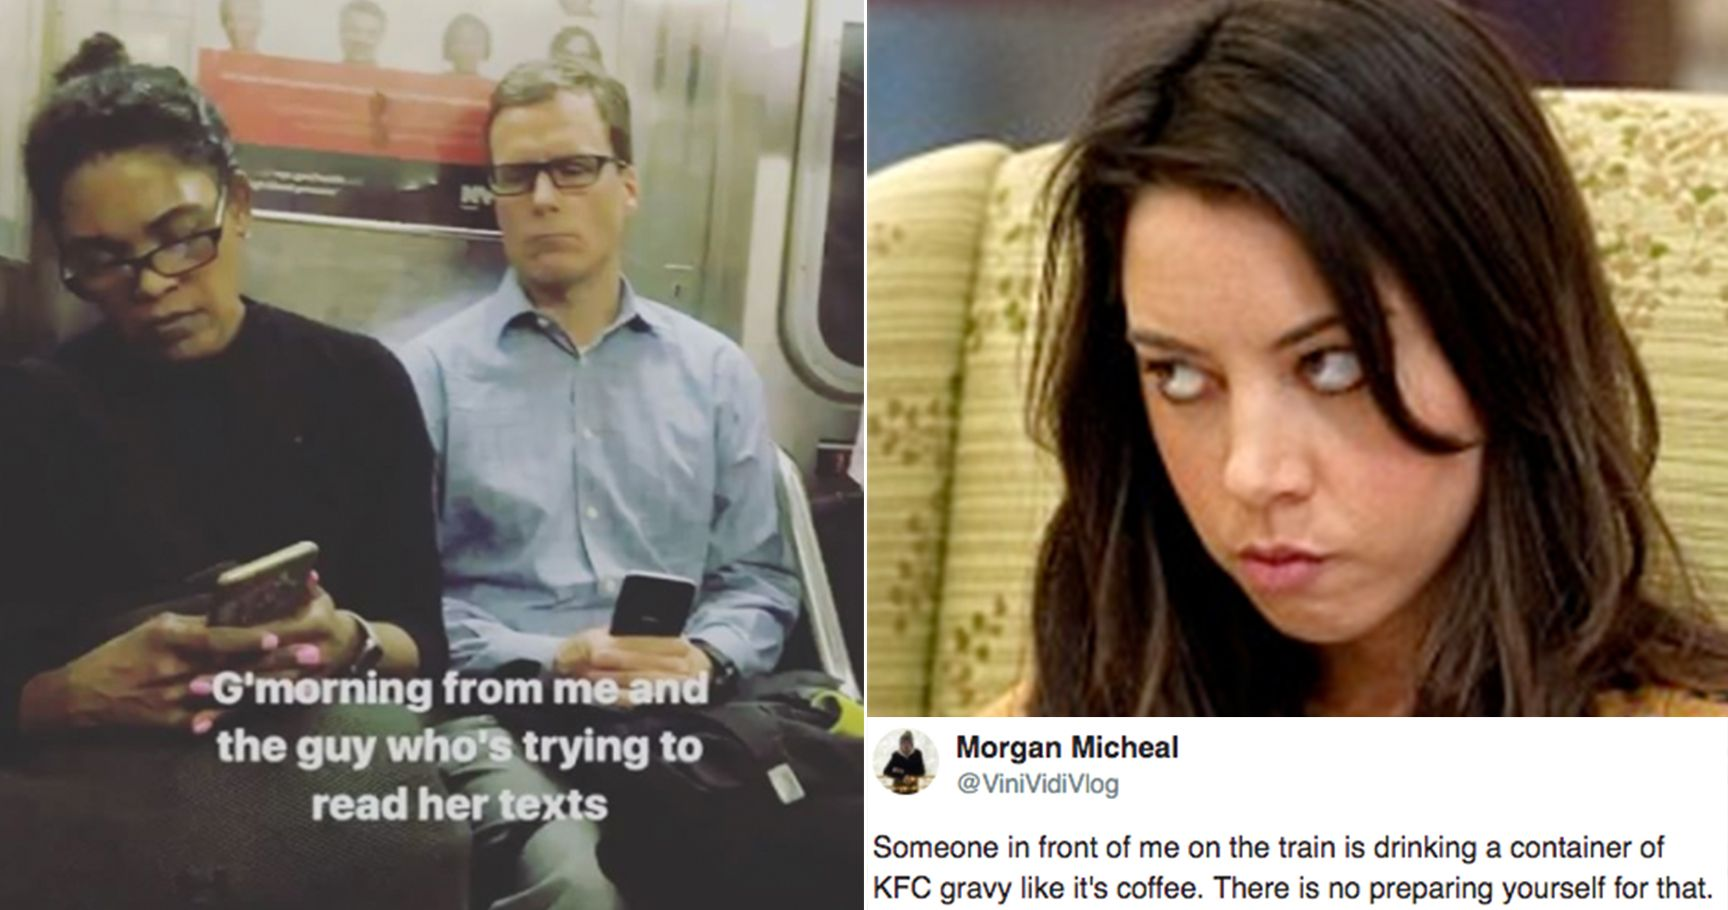 15 Deplorable Posts About Public Transport Passengers We Were NOT Prepared For